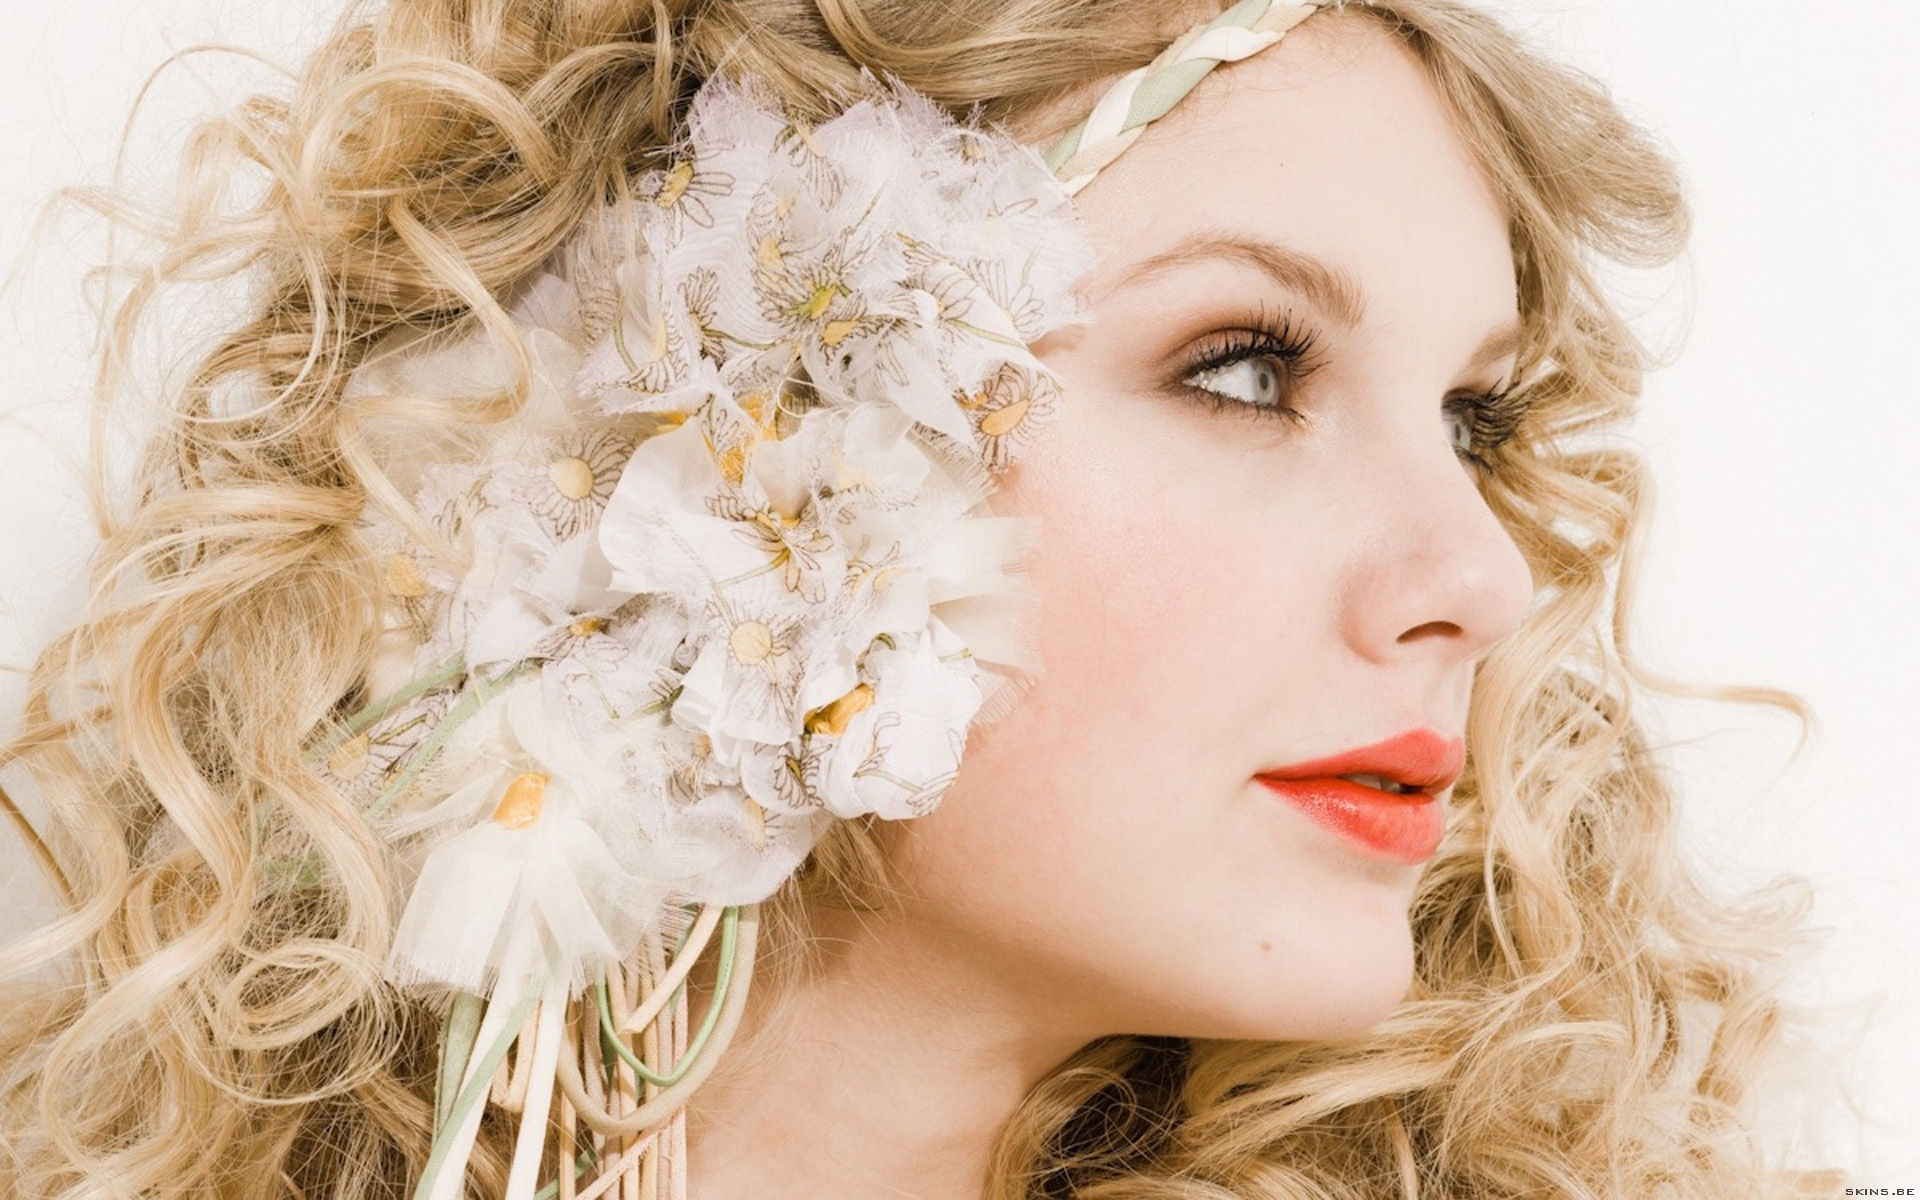 1920x1200 Taylor Swift desktop PC and Mac wallpaper 1920x1200